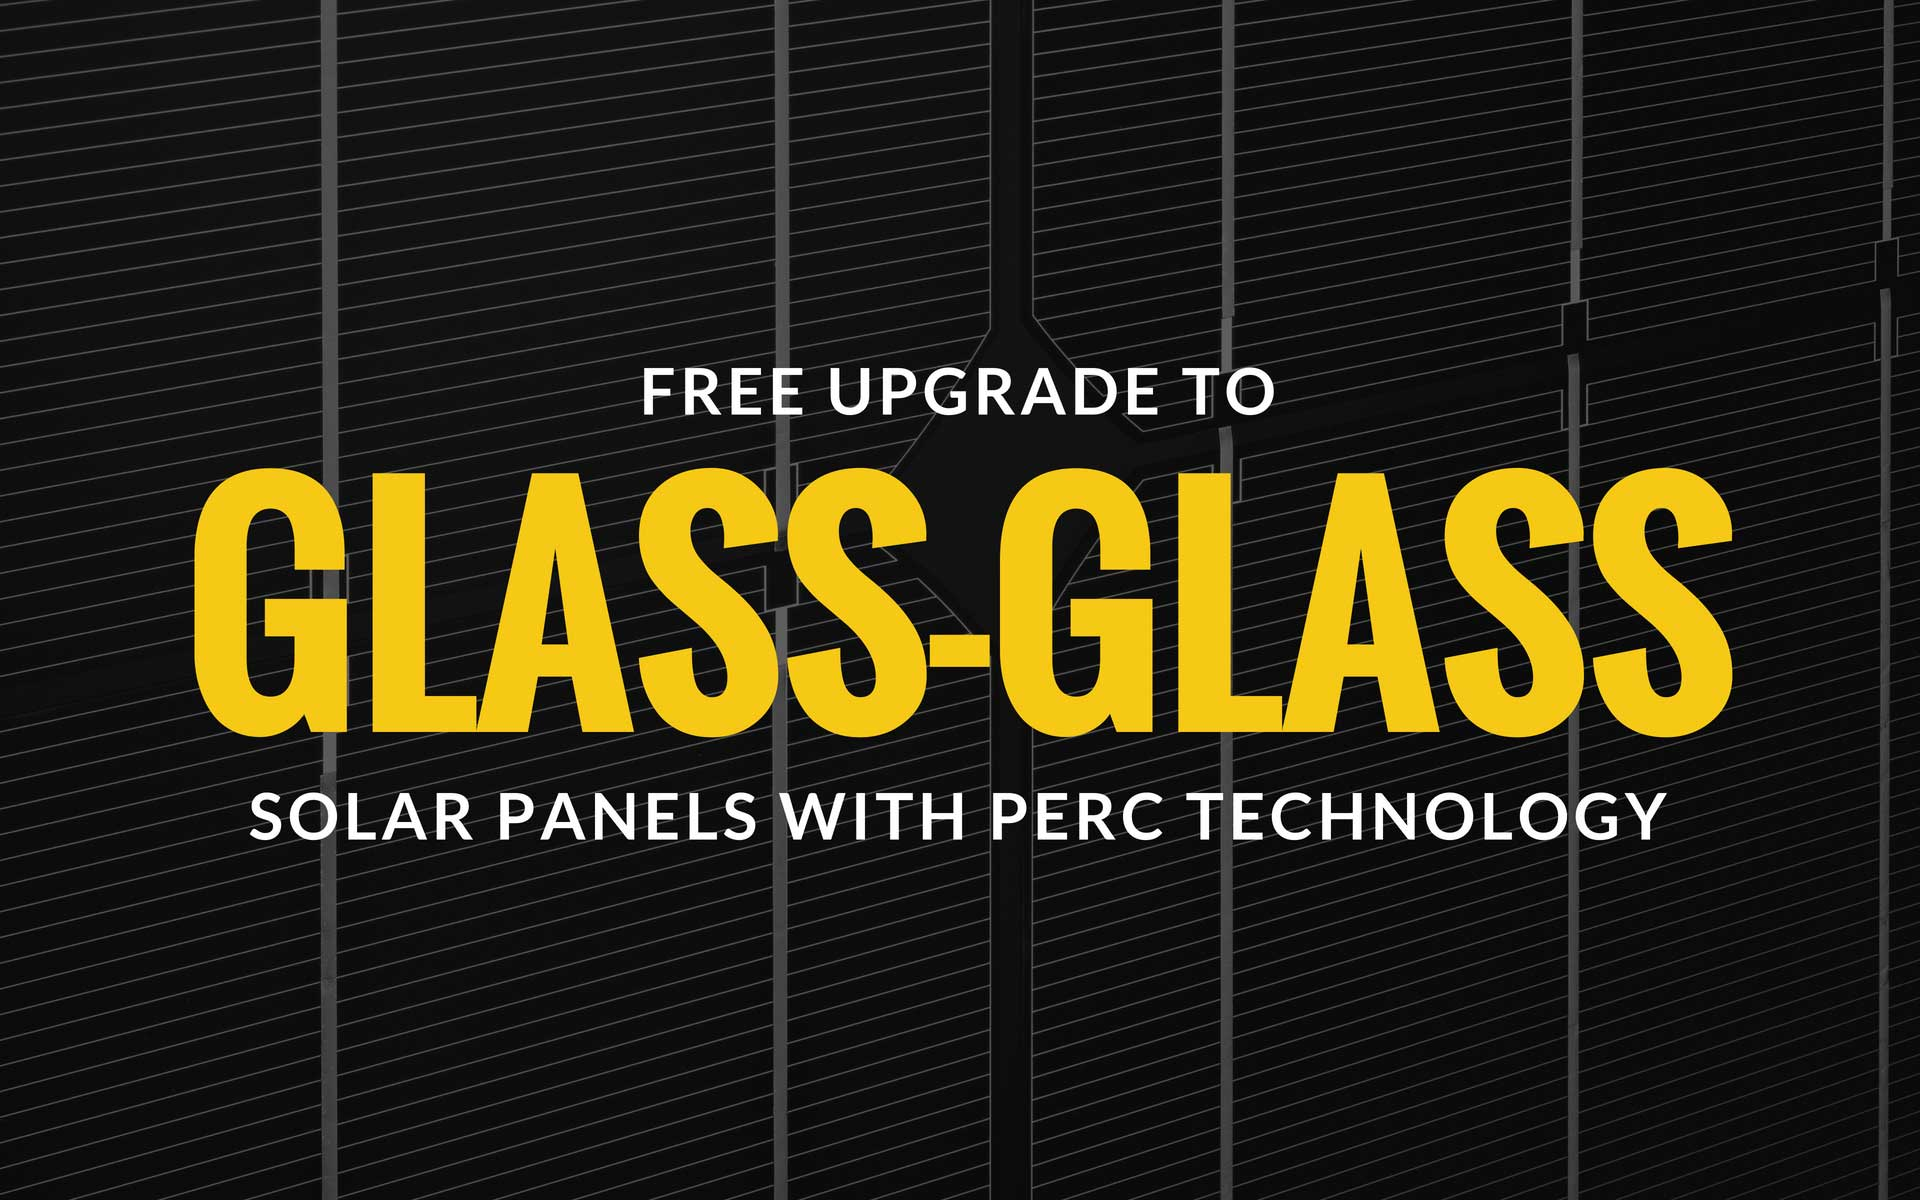 GLASS GLASS SOLAR Panels with PERC technology by Perth Solar Warehouse